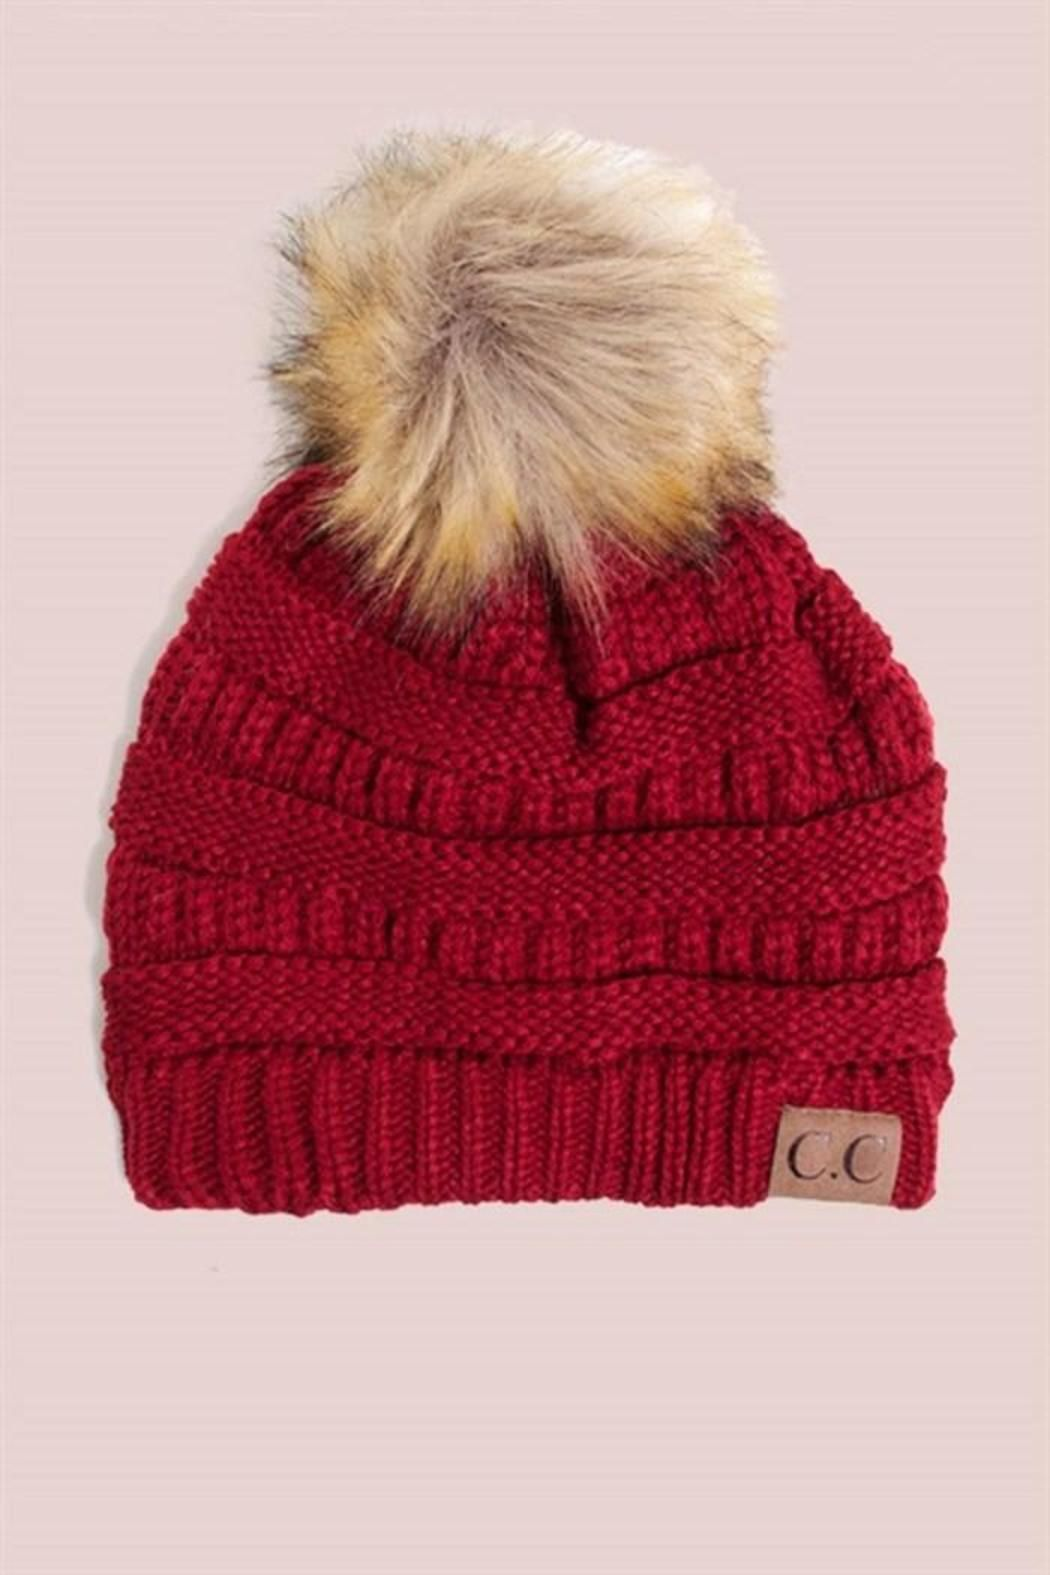 Solid ribbed beanie features a fur pom pom. Red Beanie by C.C.. Accessories  - Hats Minneapolis 73a875d89